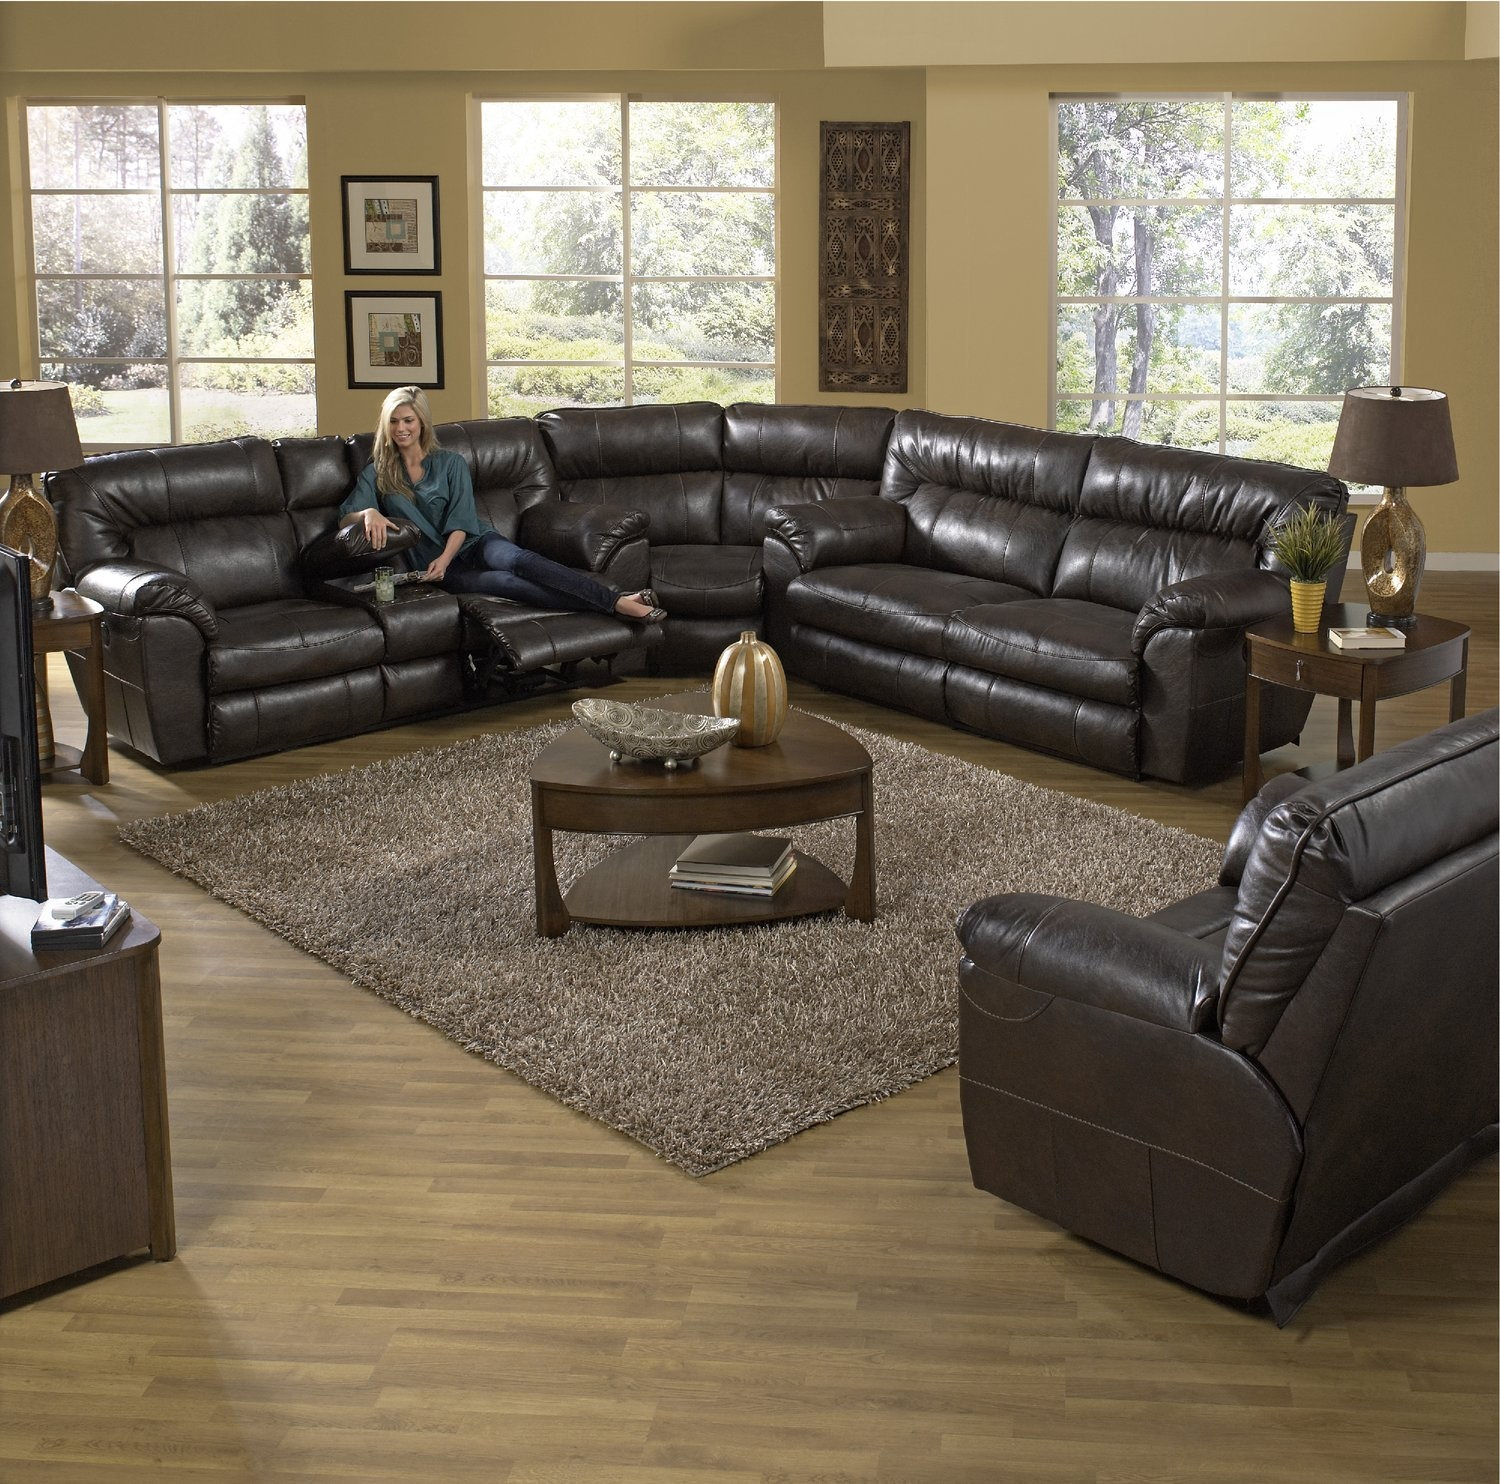 Ryan 3 Piece Reclining Sectional   Hom Furniture For Duluth Mn Sectional Sofas (Image 5 of 10)